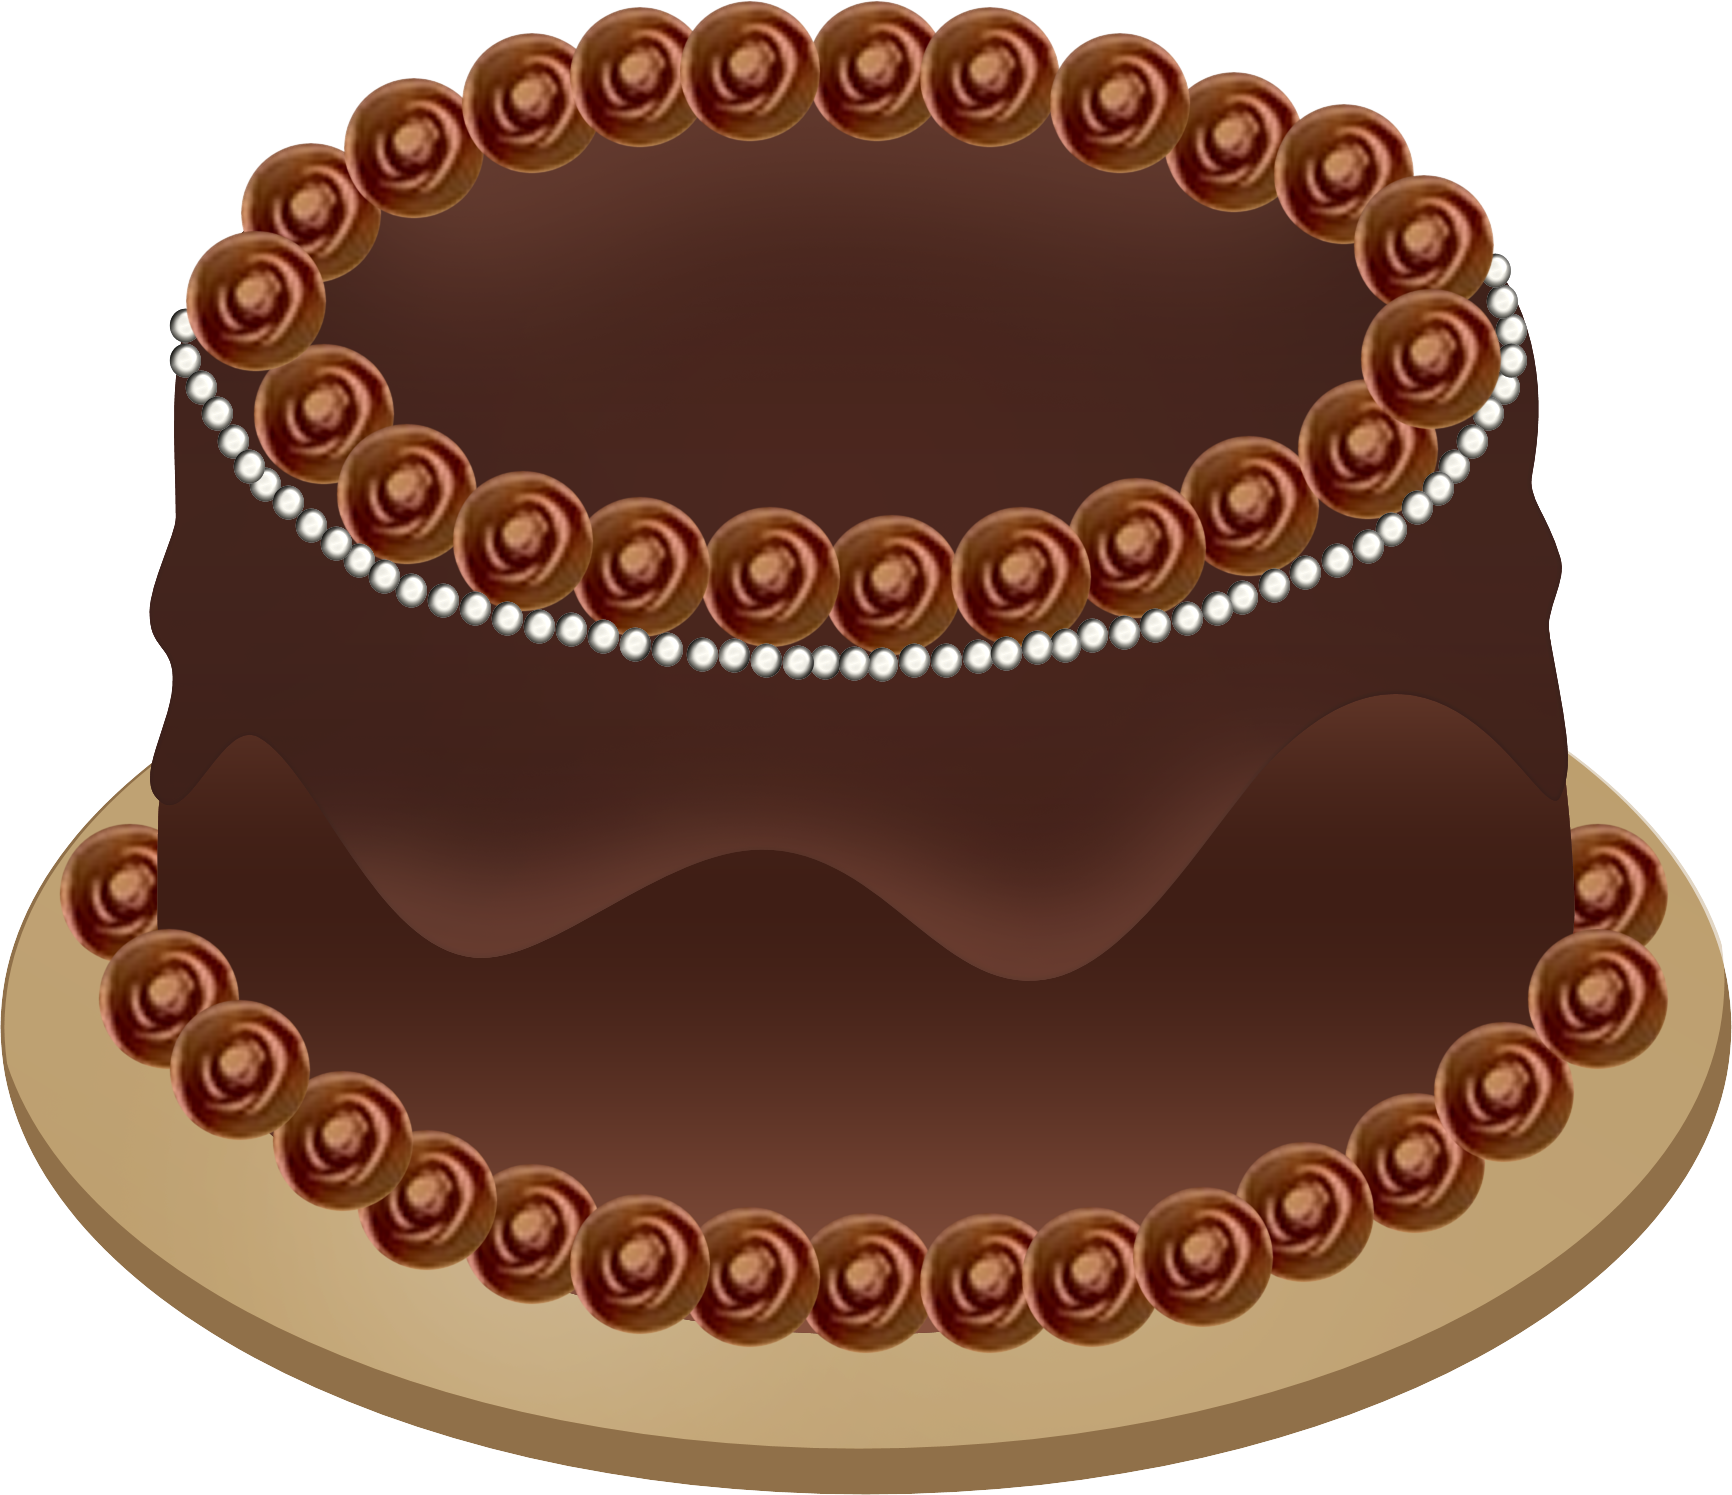 Chocolate Birthday Cake Clipart.